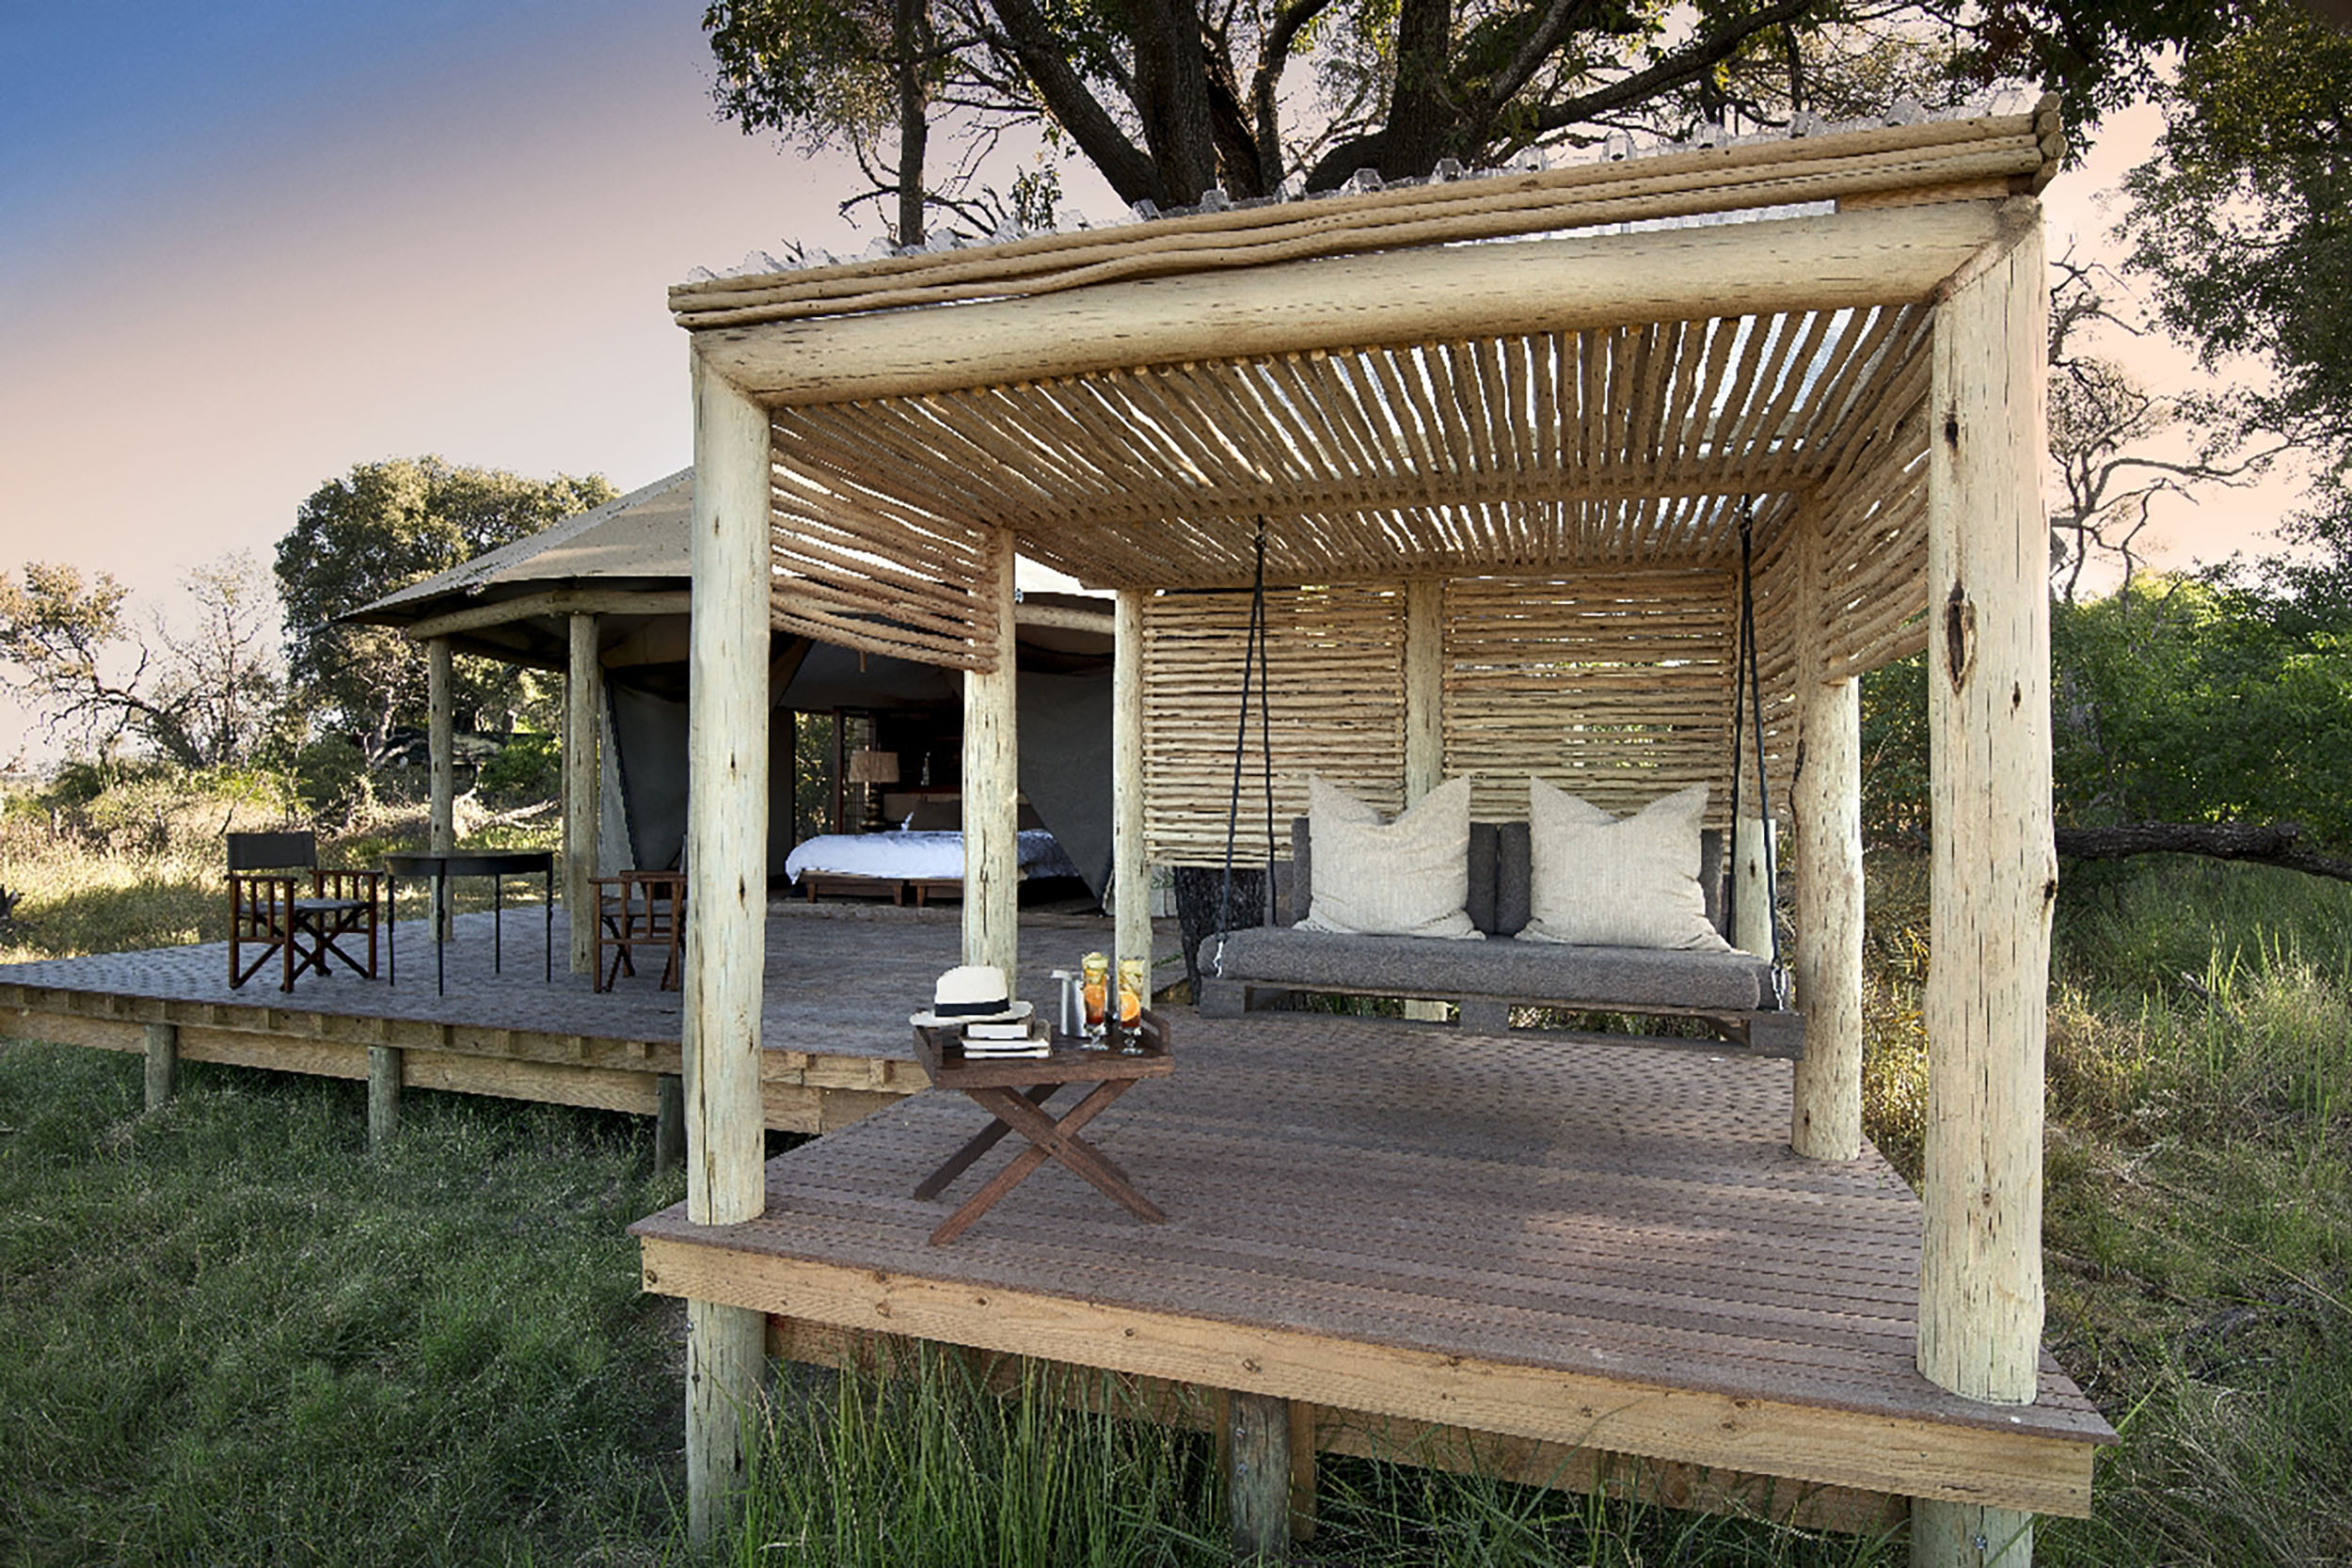 andBeyond-Nxabega-Okavango-Tented-Camp-Private-Sala.jpg